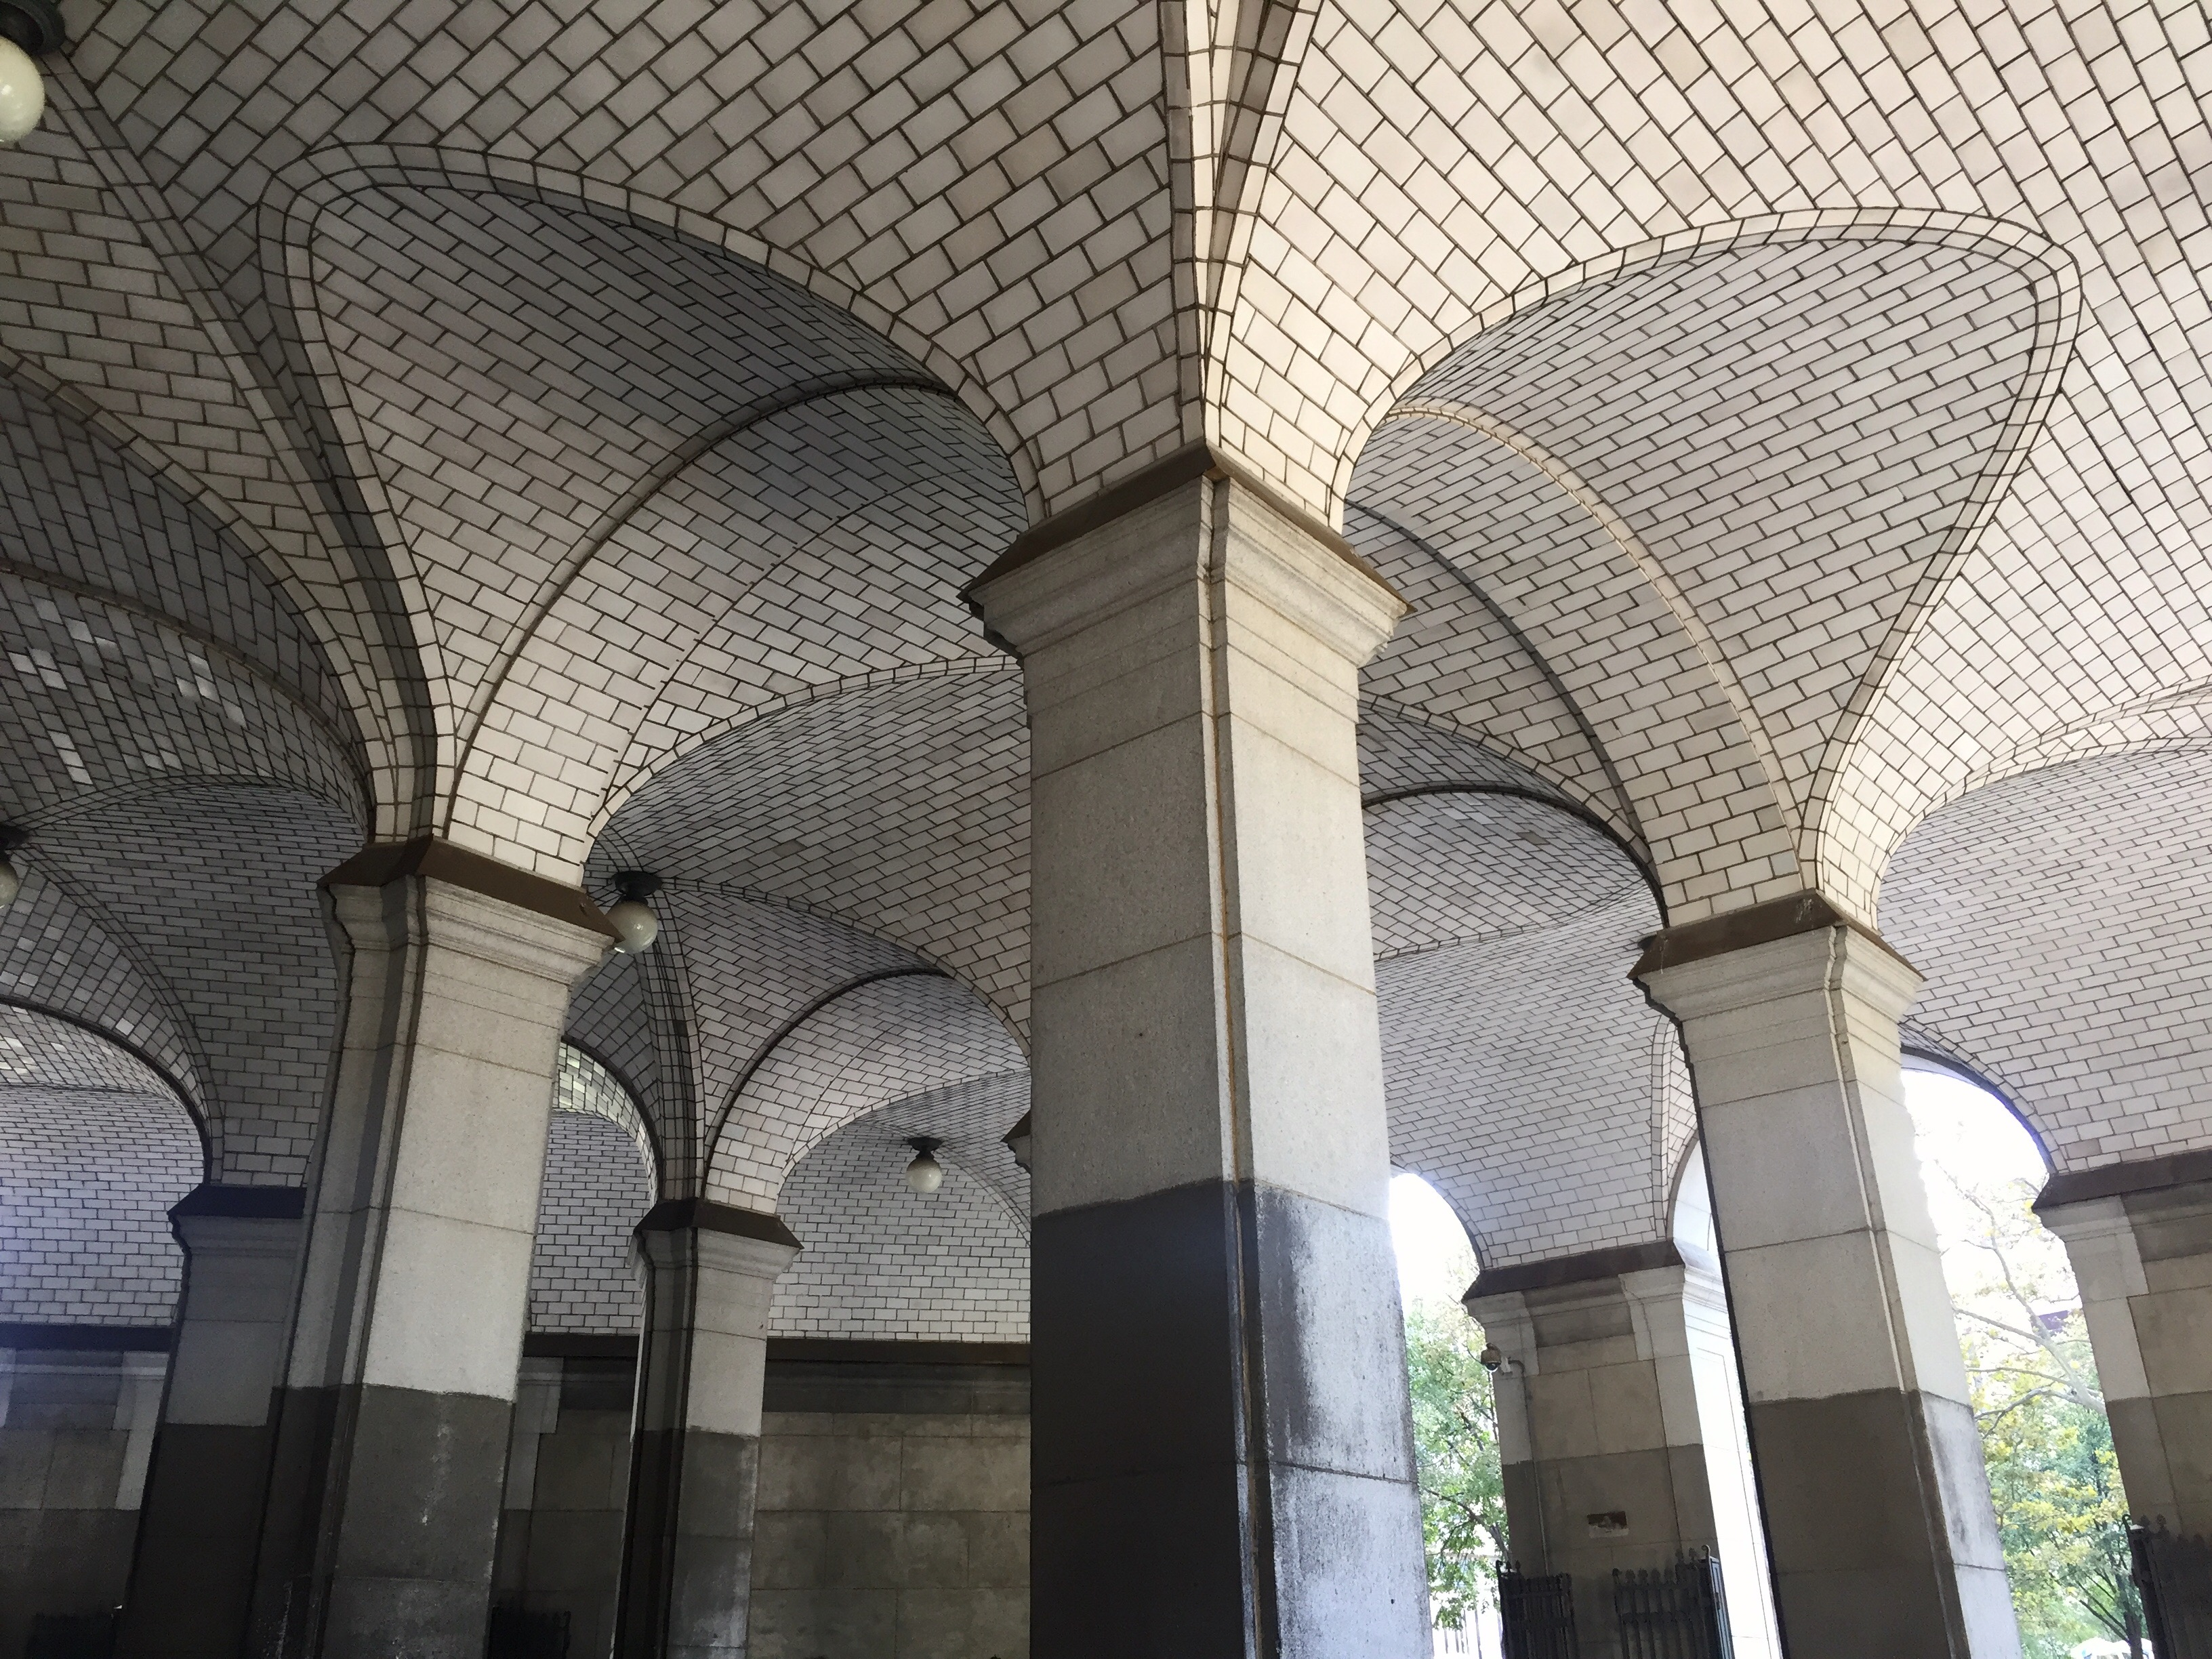 Chambers Street station boasts lofty vaulted ceilings and soaring arches.